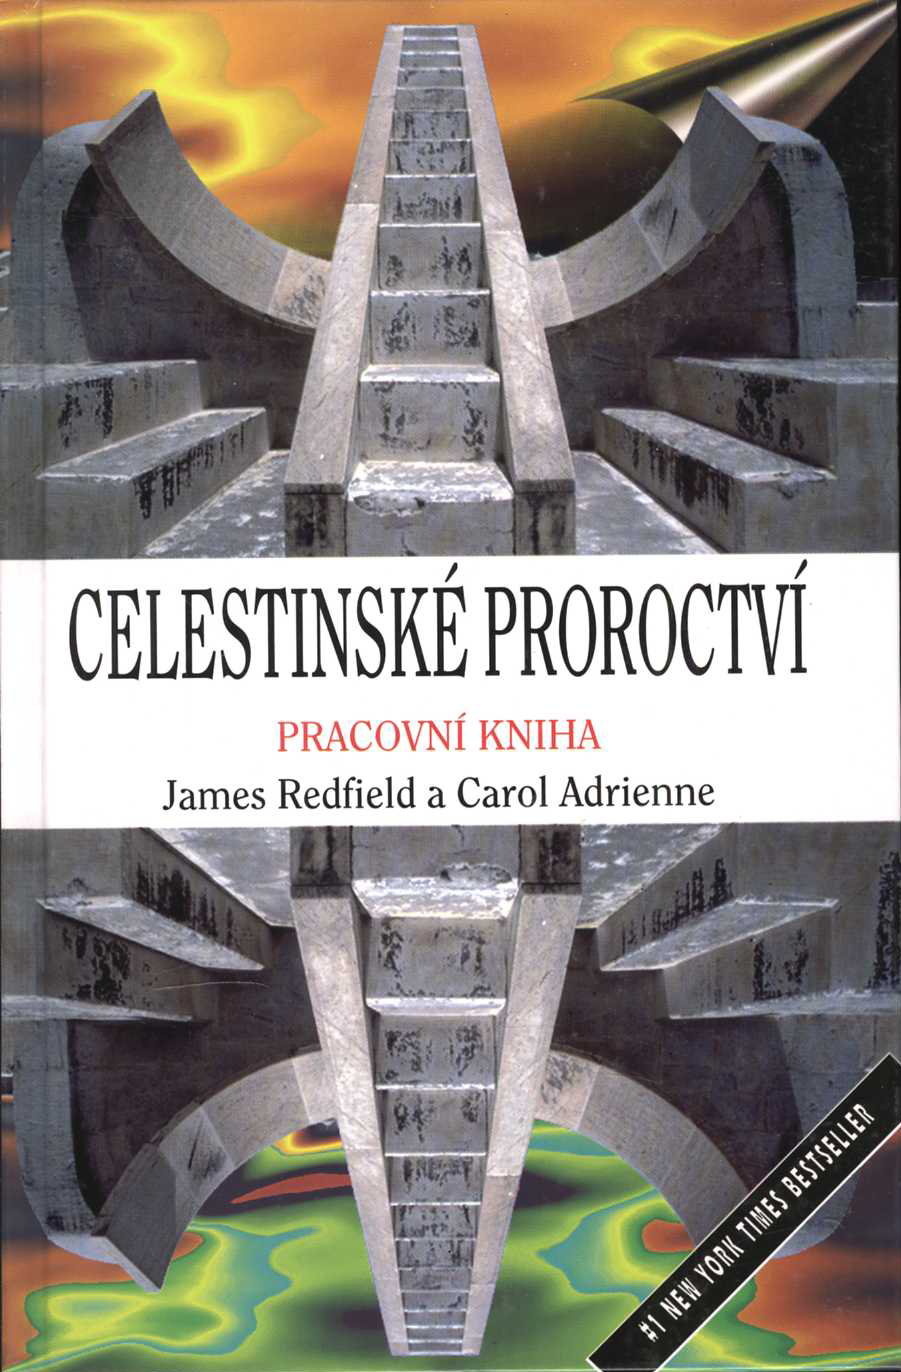 Celestinské proroctví (James Redfield, Carol Adrienne)